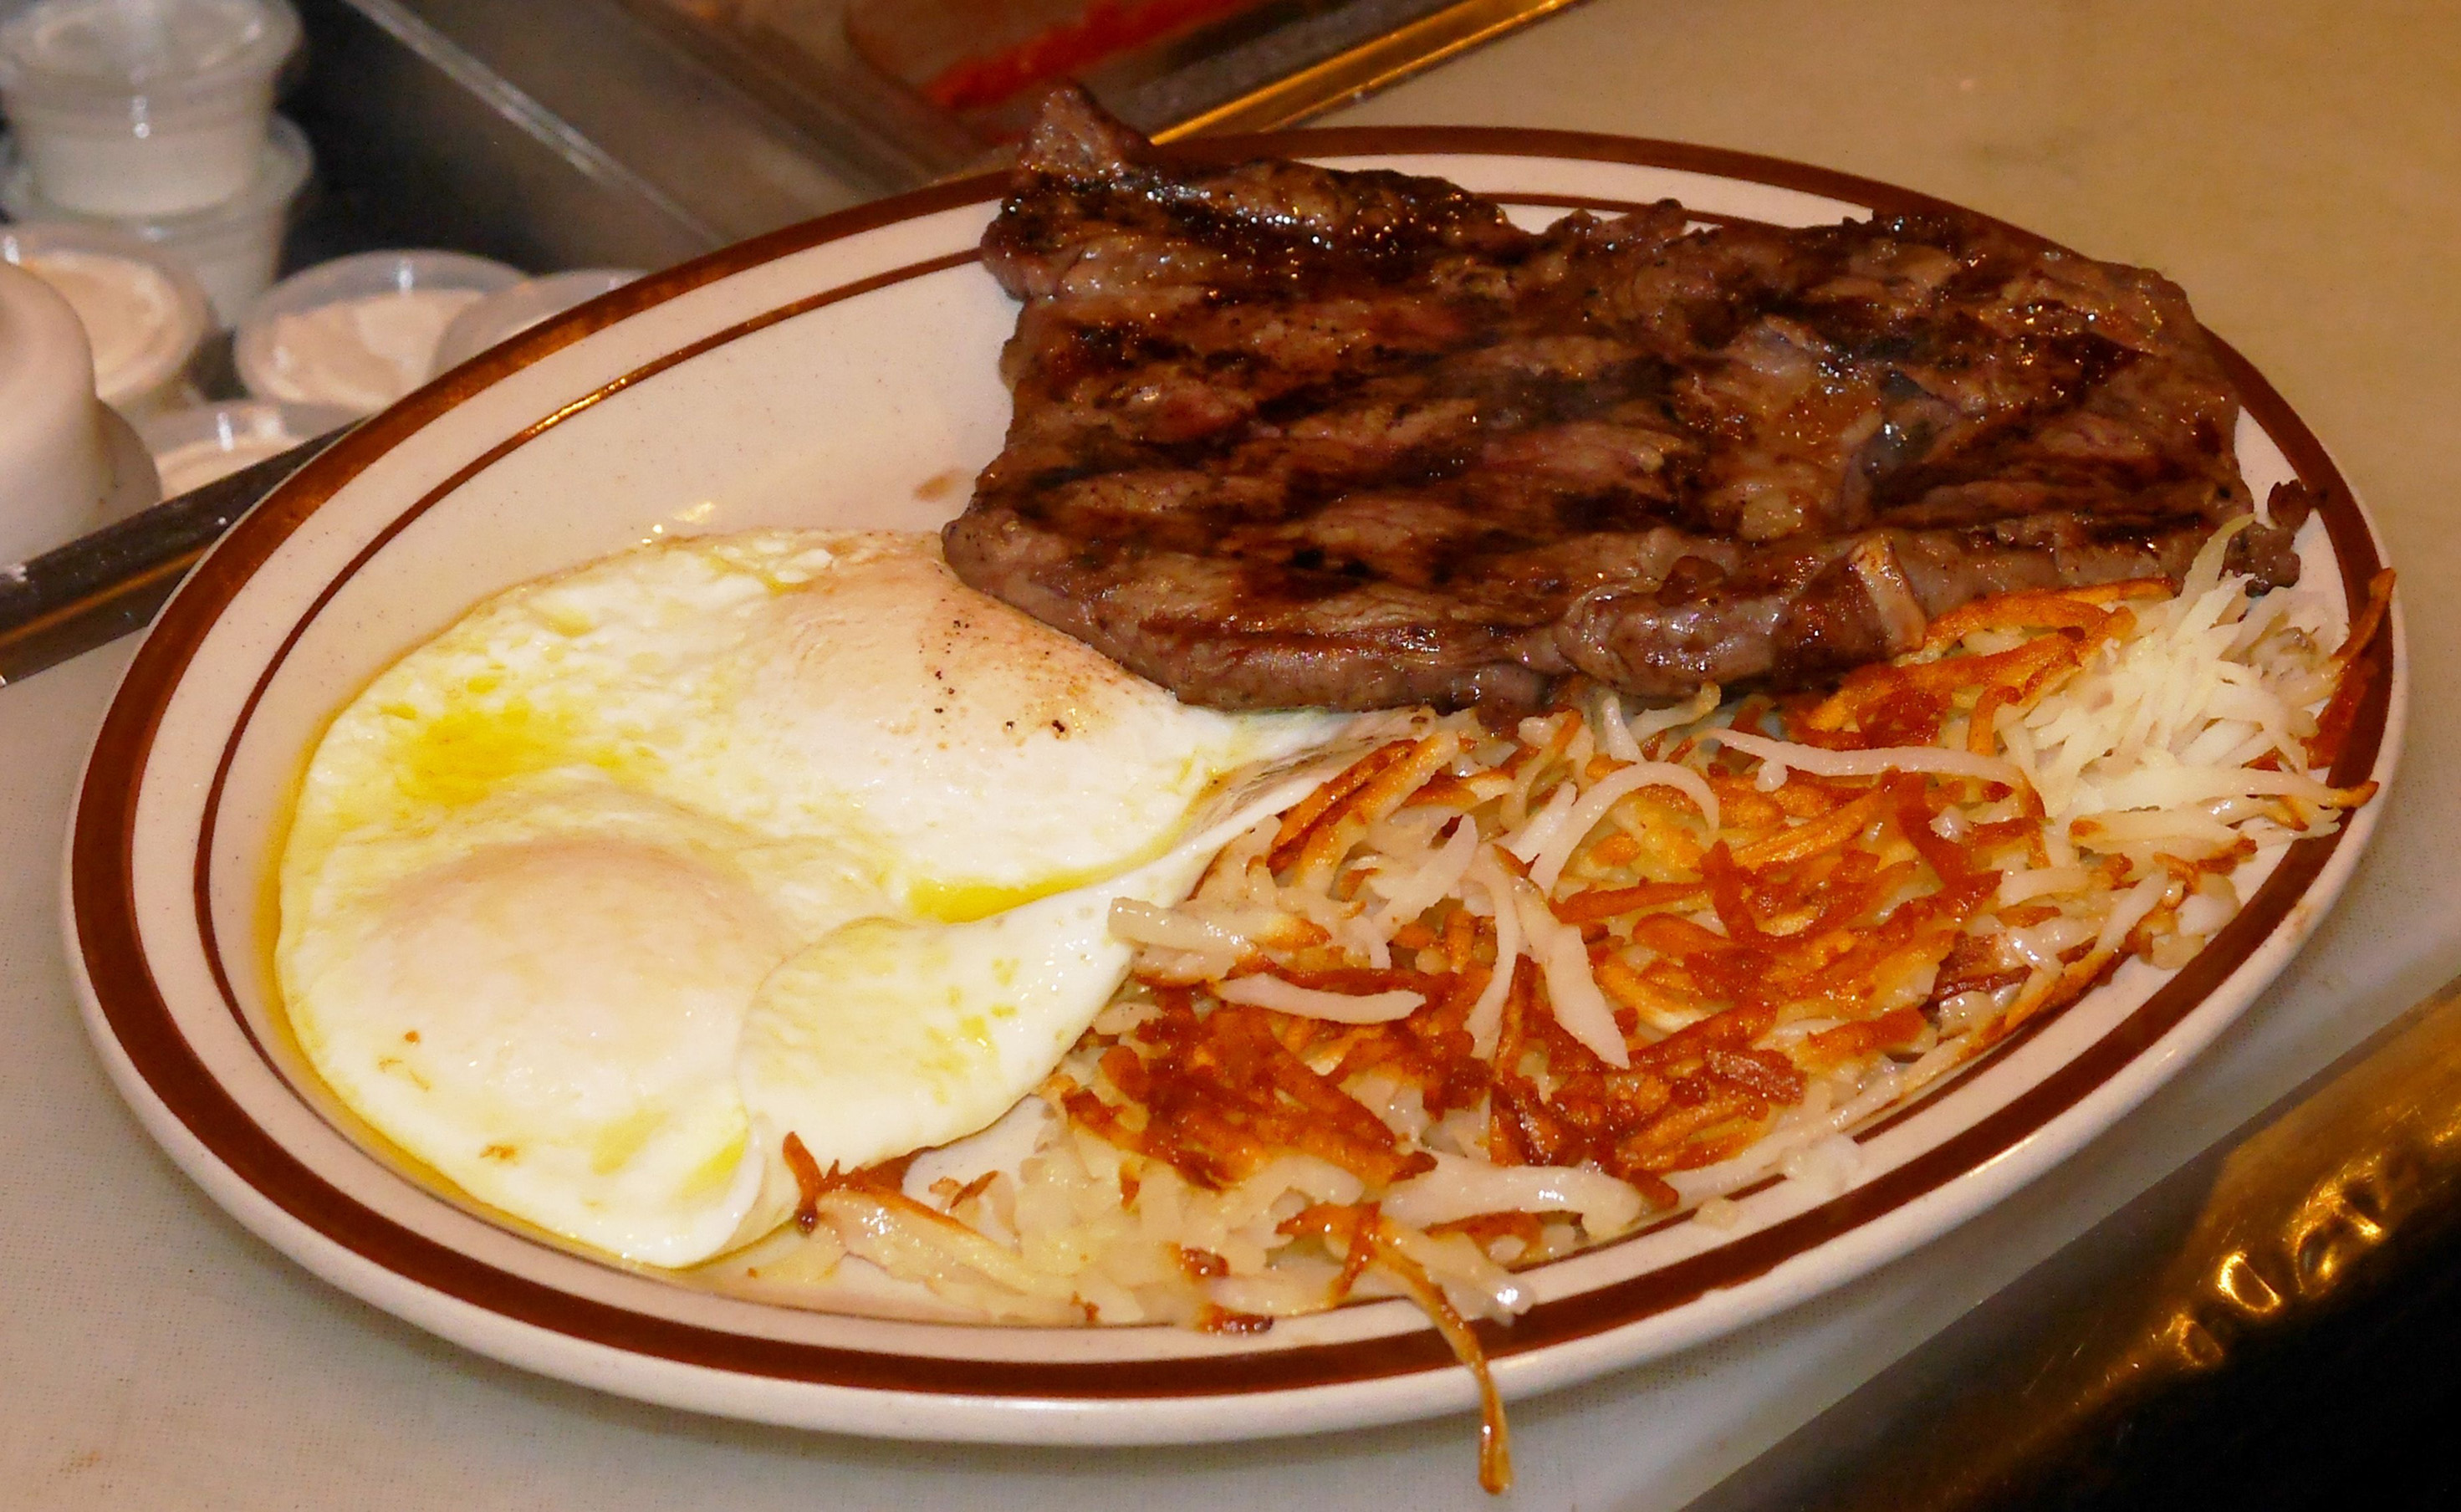 Visit Allen Cafe for All Day Breakfast and Lunch